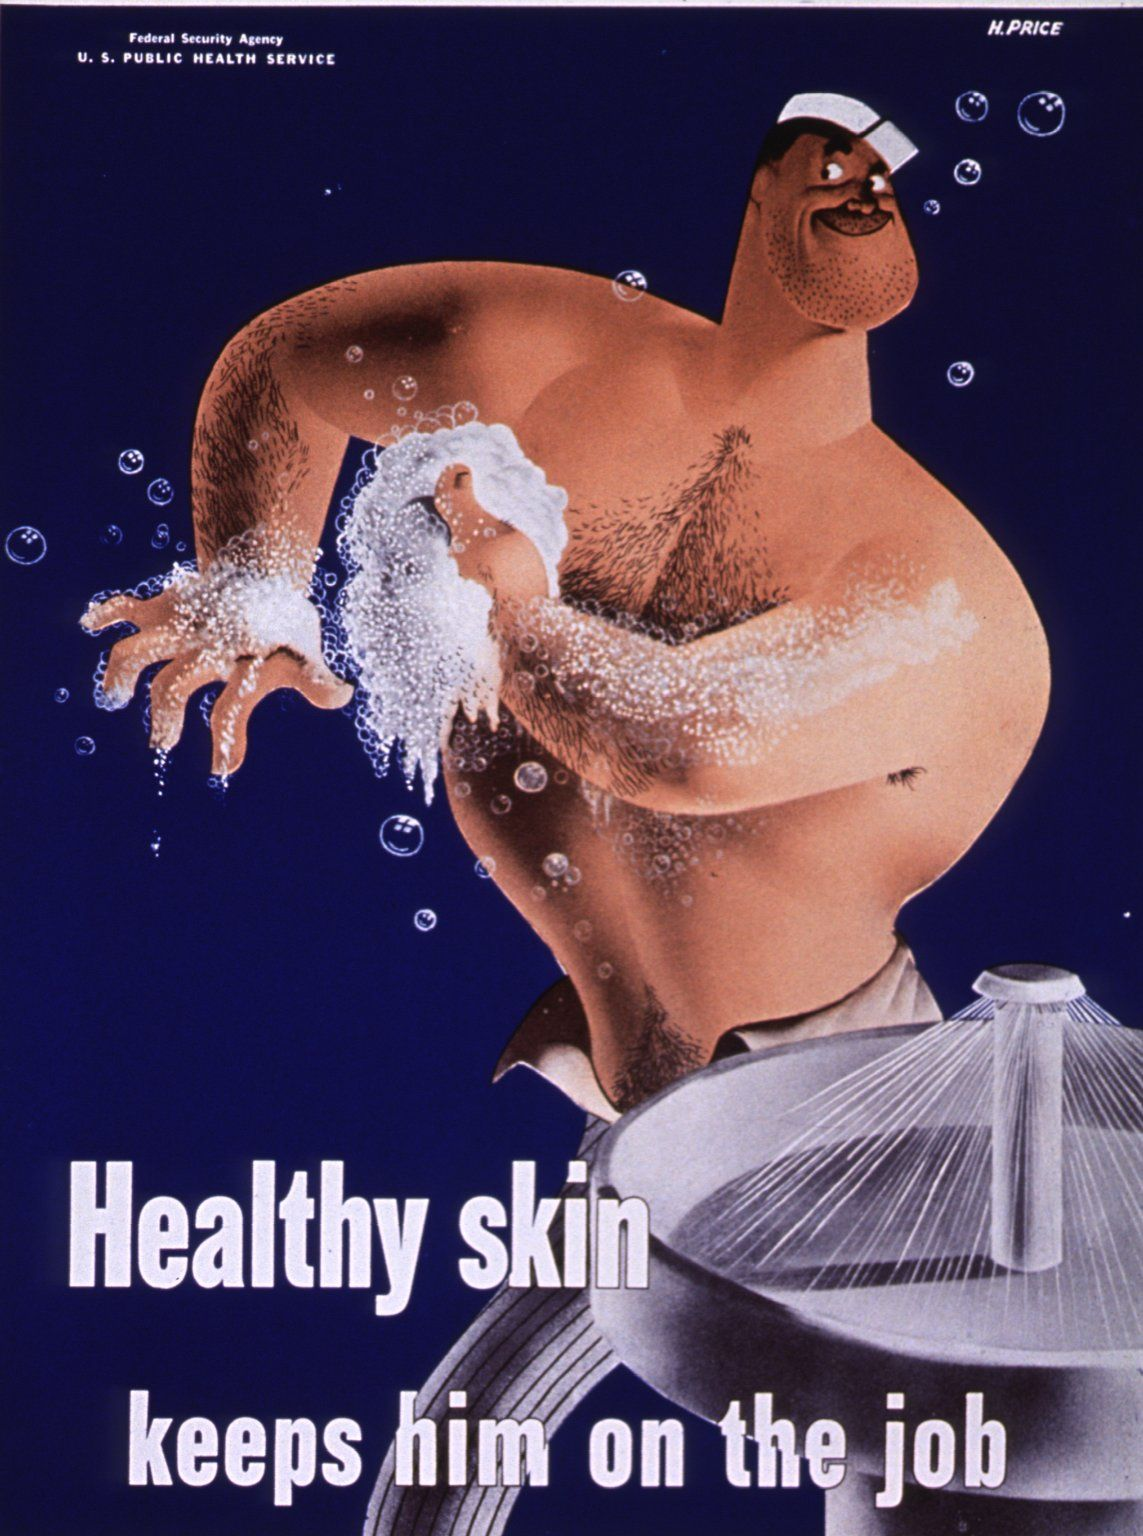 Personal hygiene campaign poster Art Pinterest